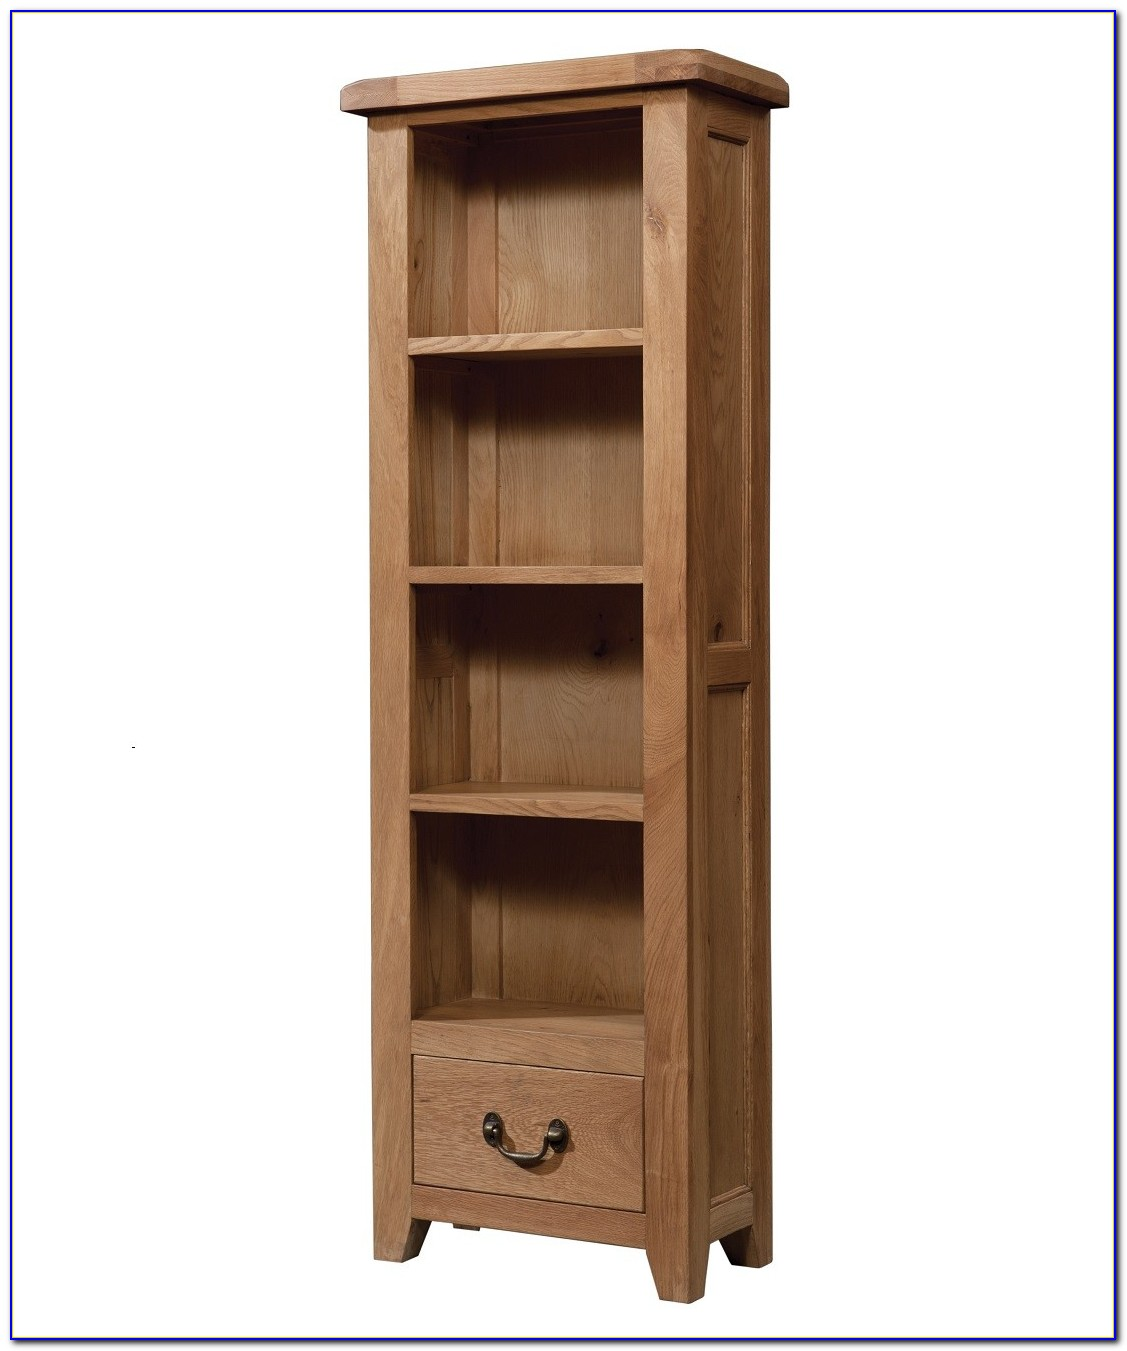 Narrow Shelves With Drawers